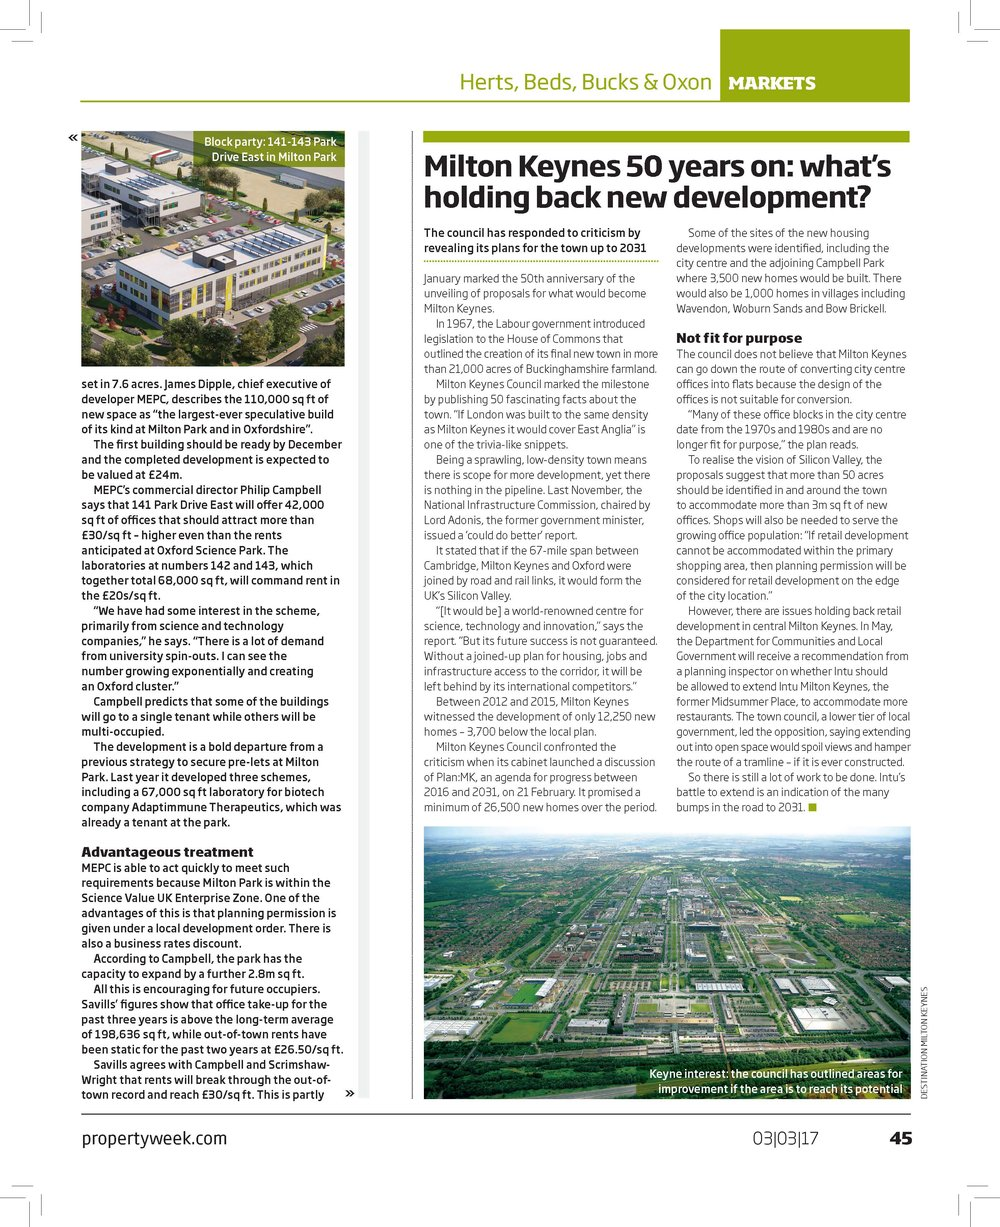 Oxford Science Park, Property Week digital pdf, 3 March 2017_Page_3.jpg